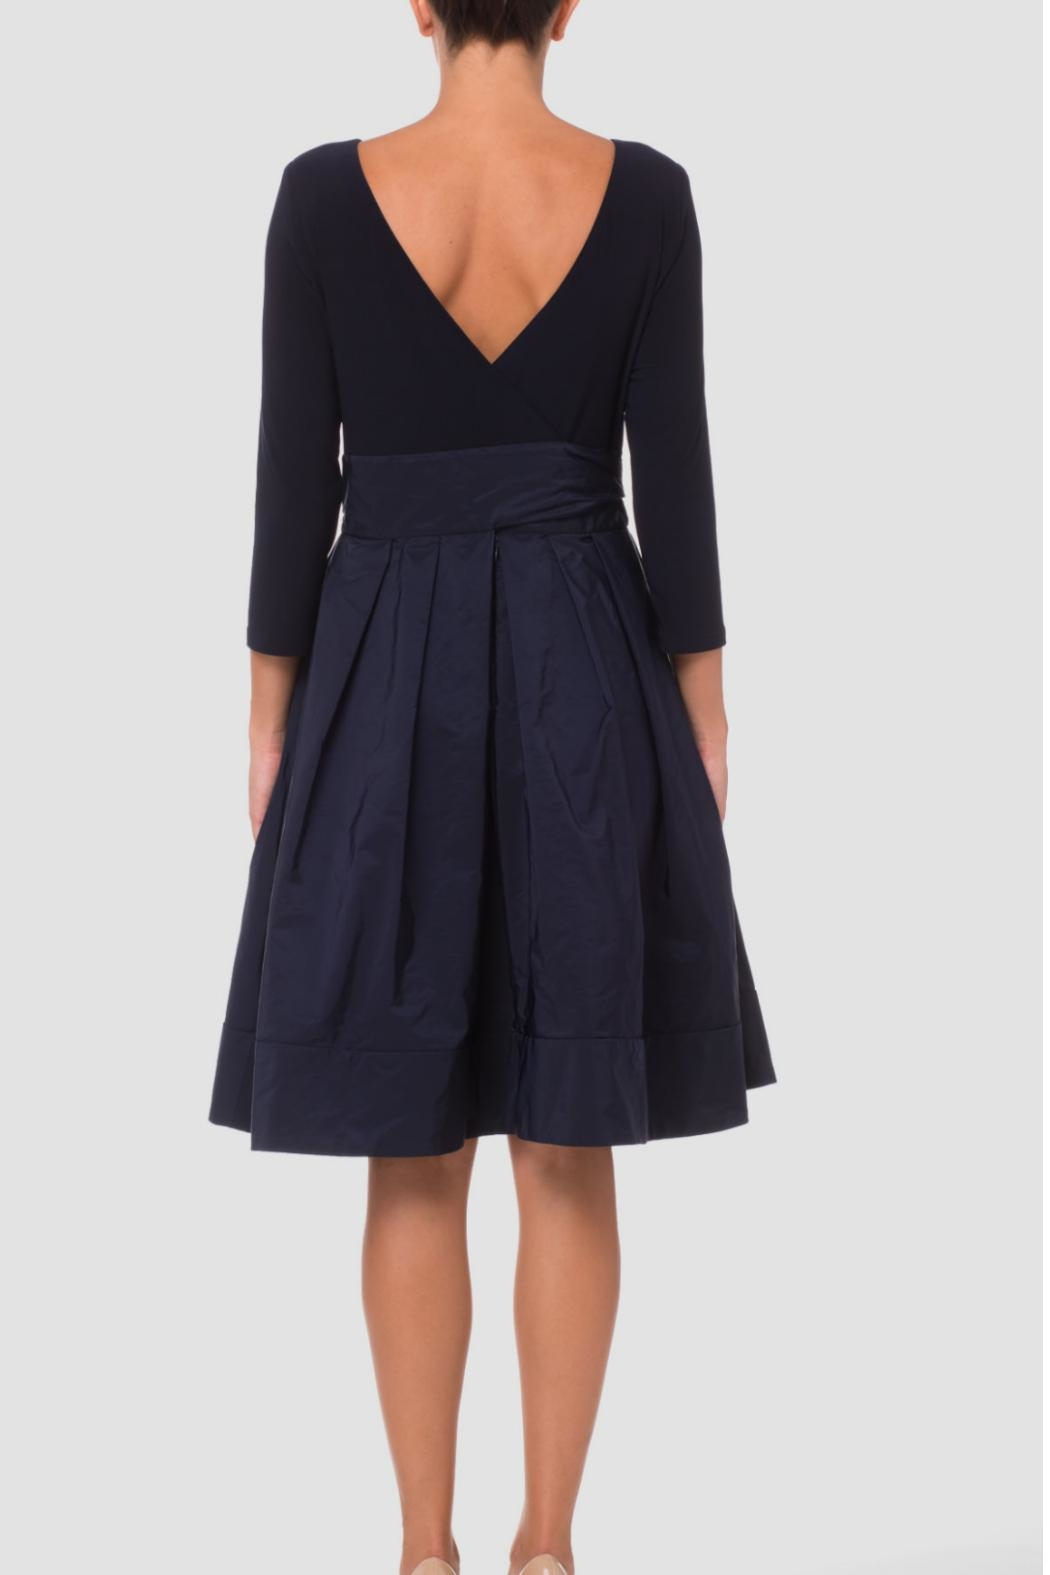 Joseph Ribkoff Cinched Waist Dress - Front Full Image